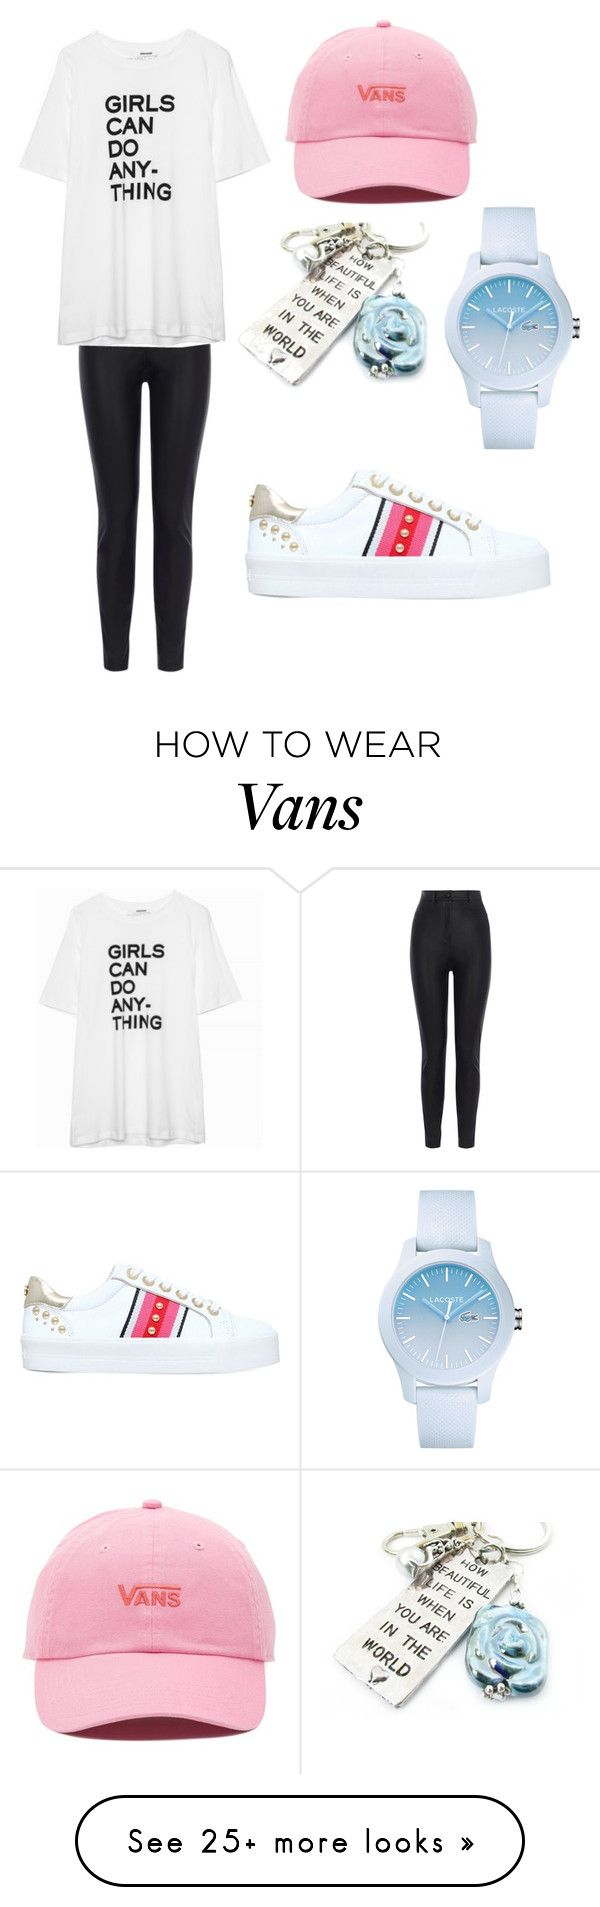 """Untitled #136"" by estinur23 on Polyvore featuring Carvela, Karen Millen, Zadig & Voltaire, Vans and Lacoste"